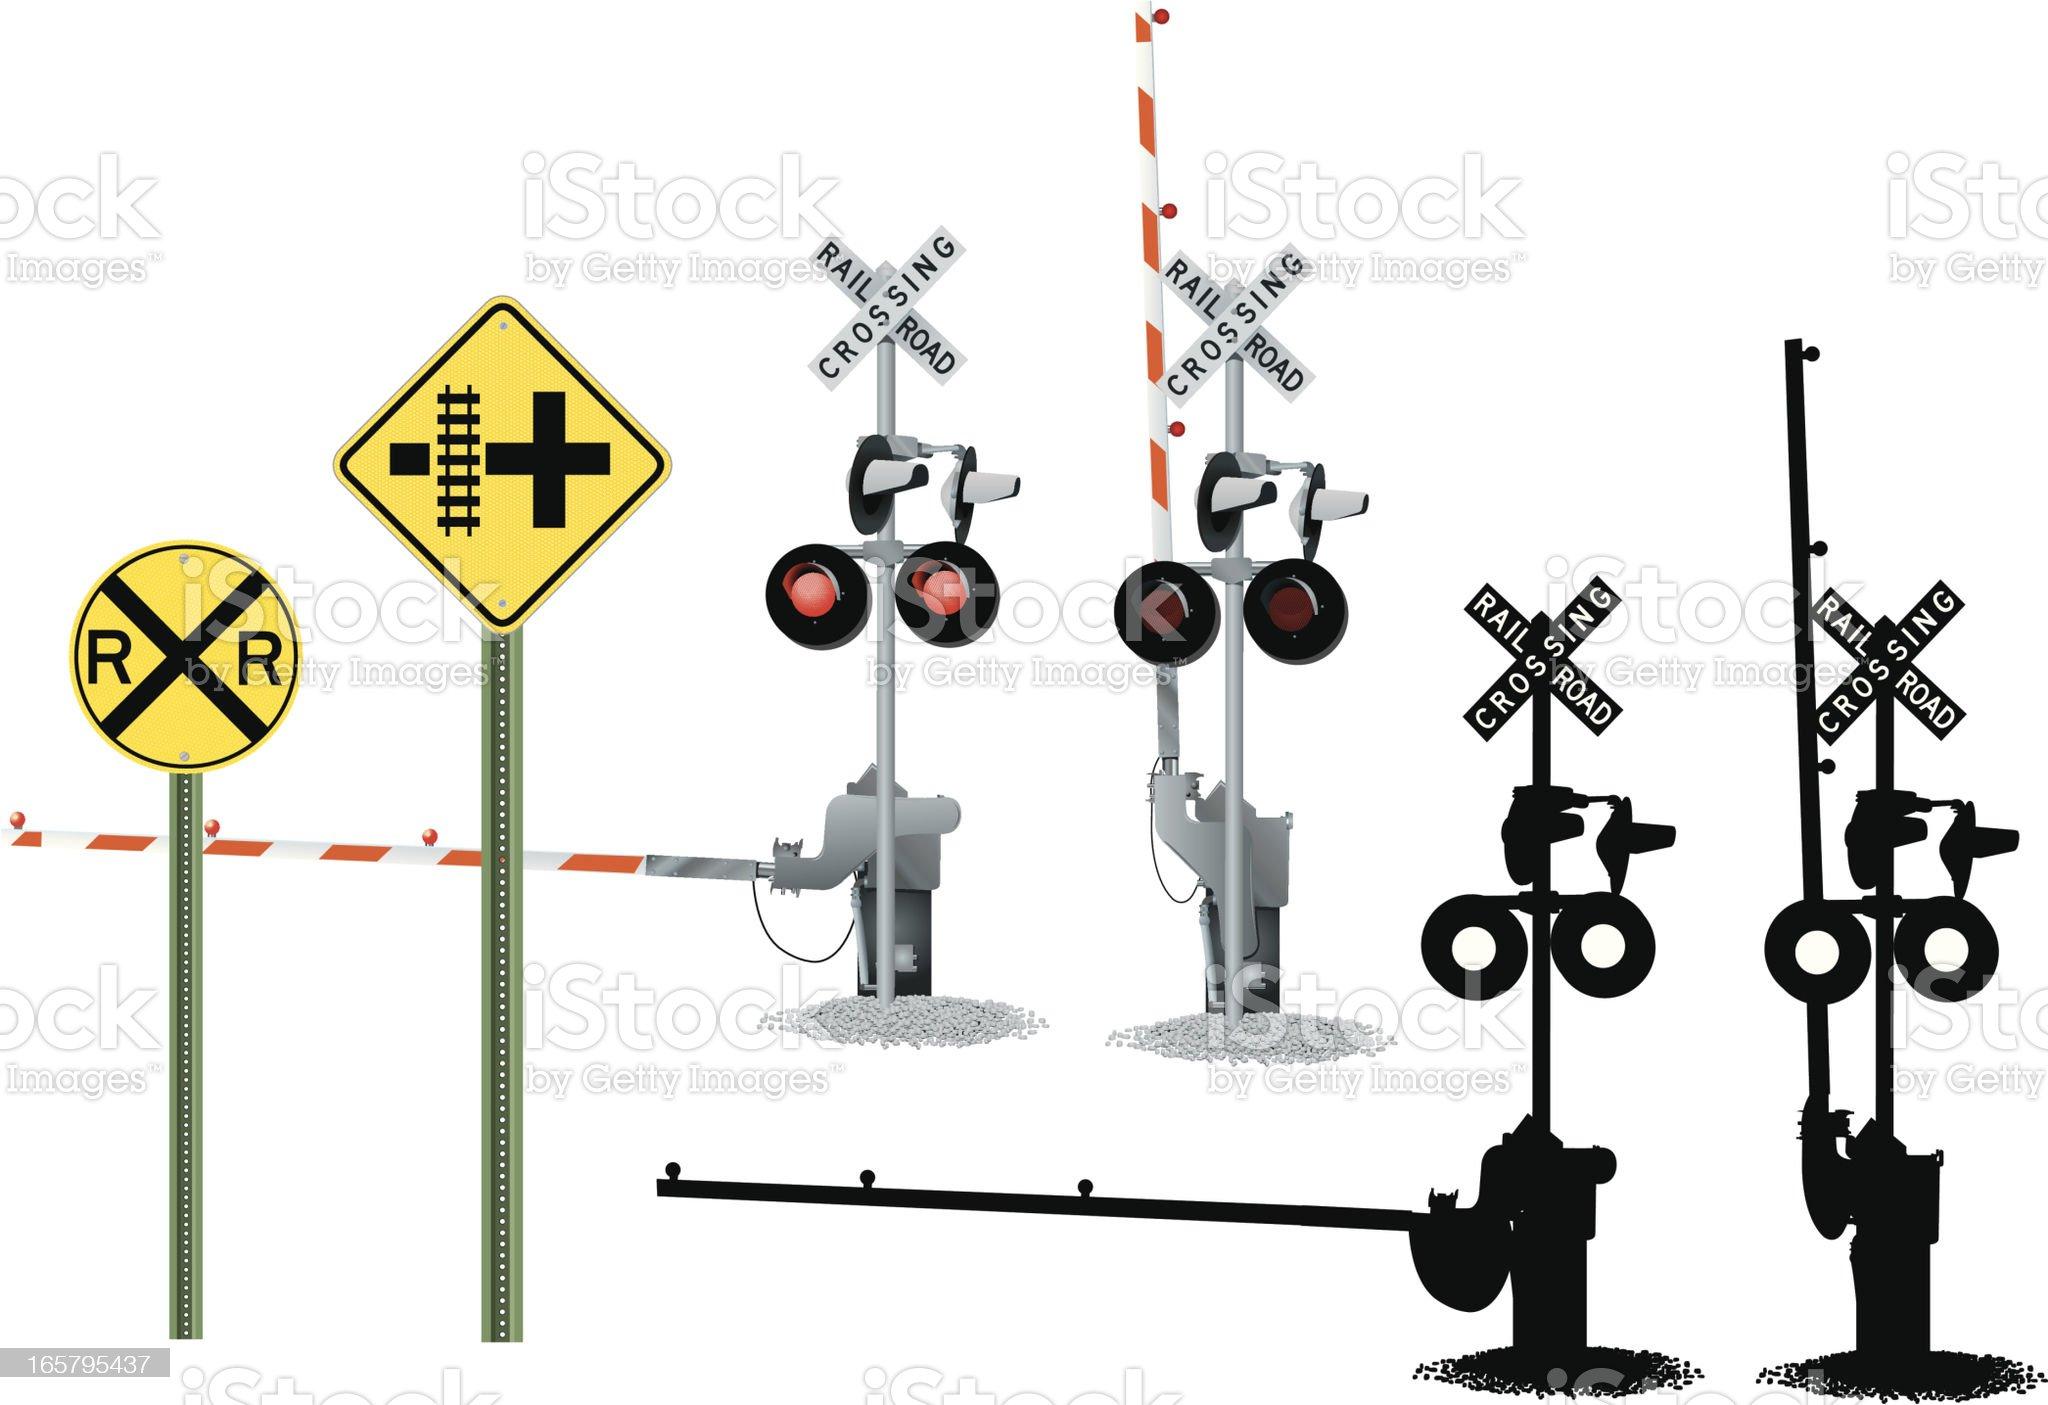 Railroad Crossing and Traffic Signs royalty-free stock vector art